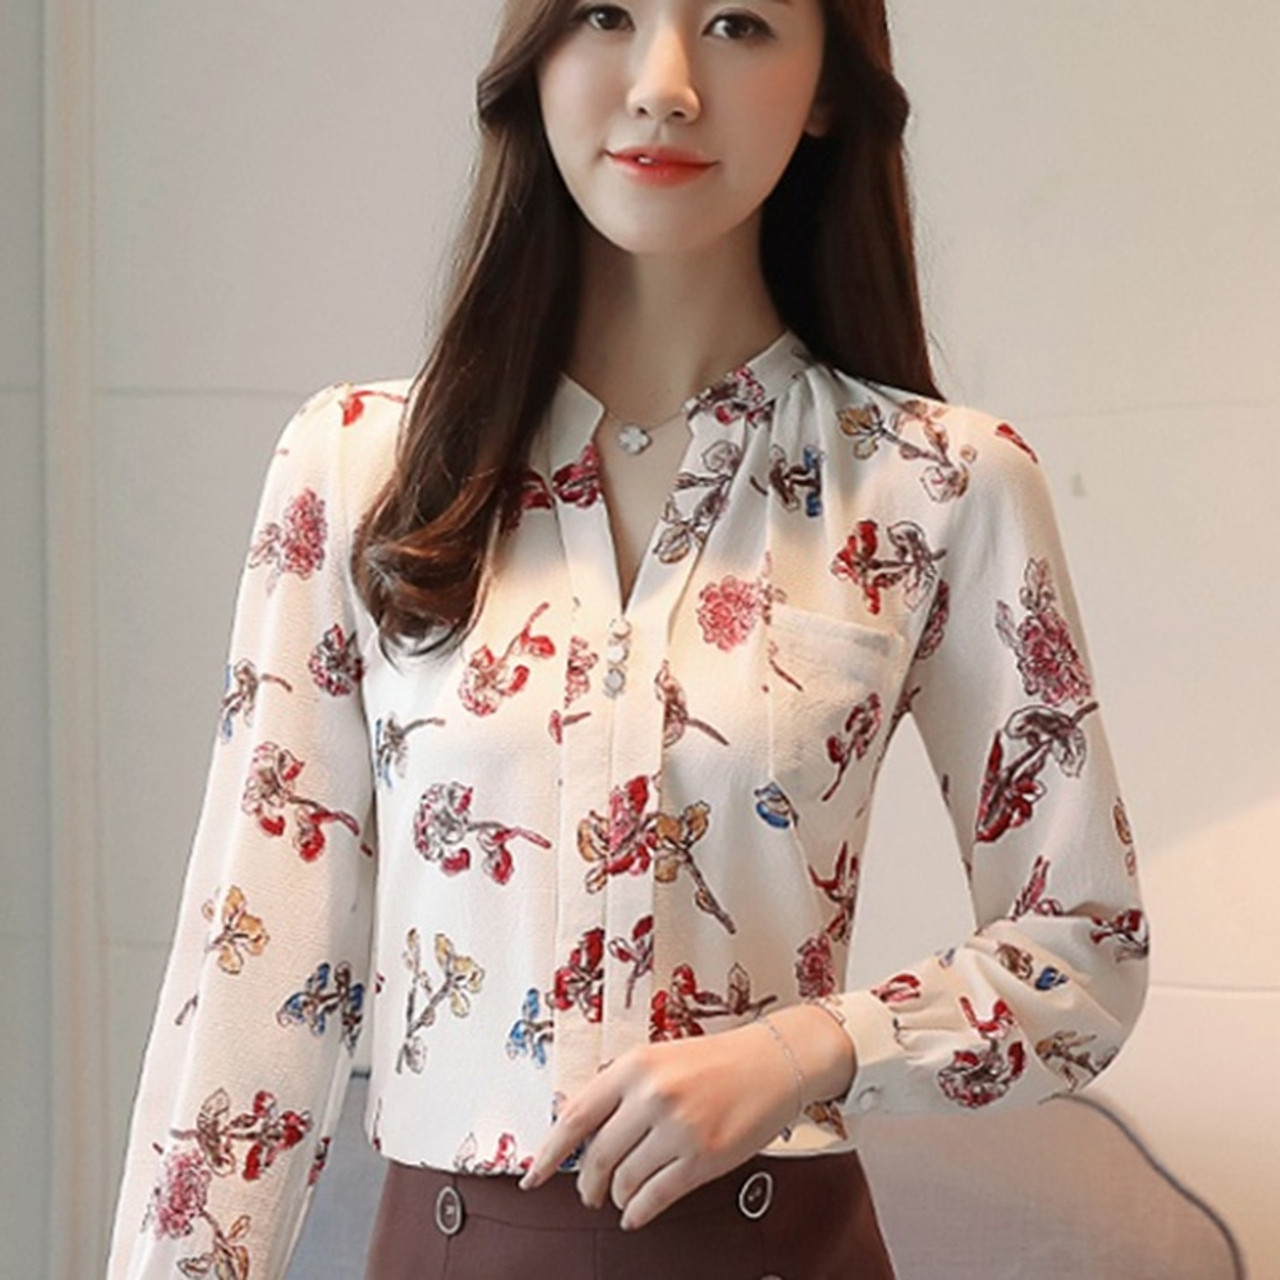 44e94daebed663 ... 2018 Womens Tops And Blouses Autumn Fashion V-Neck Chiffon Blouses Slim  Women Chiffon Blouse ...